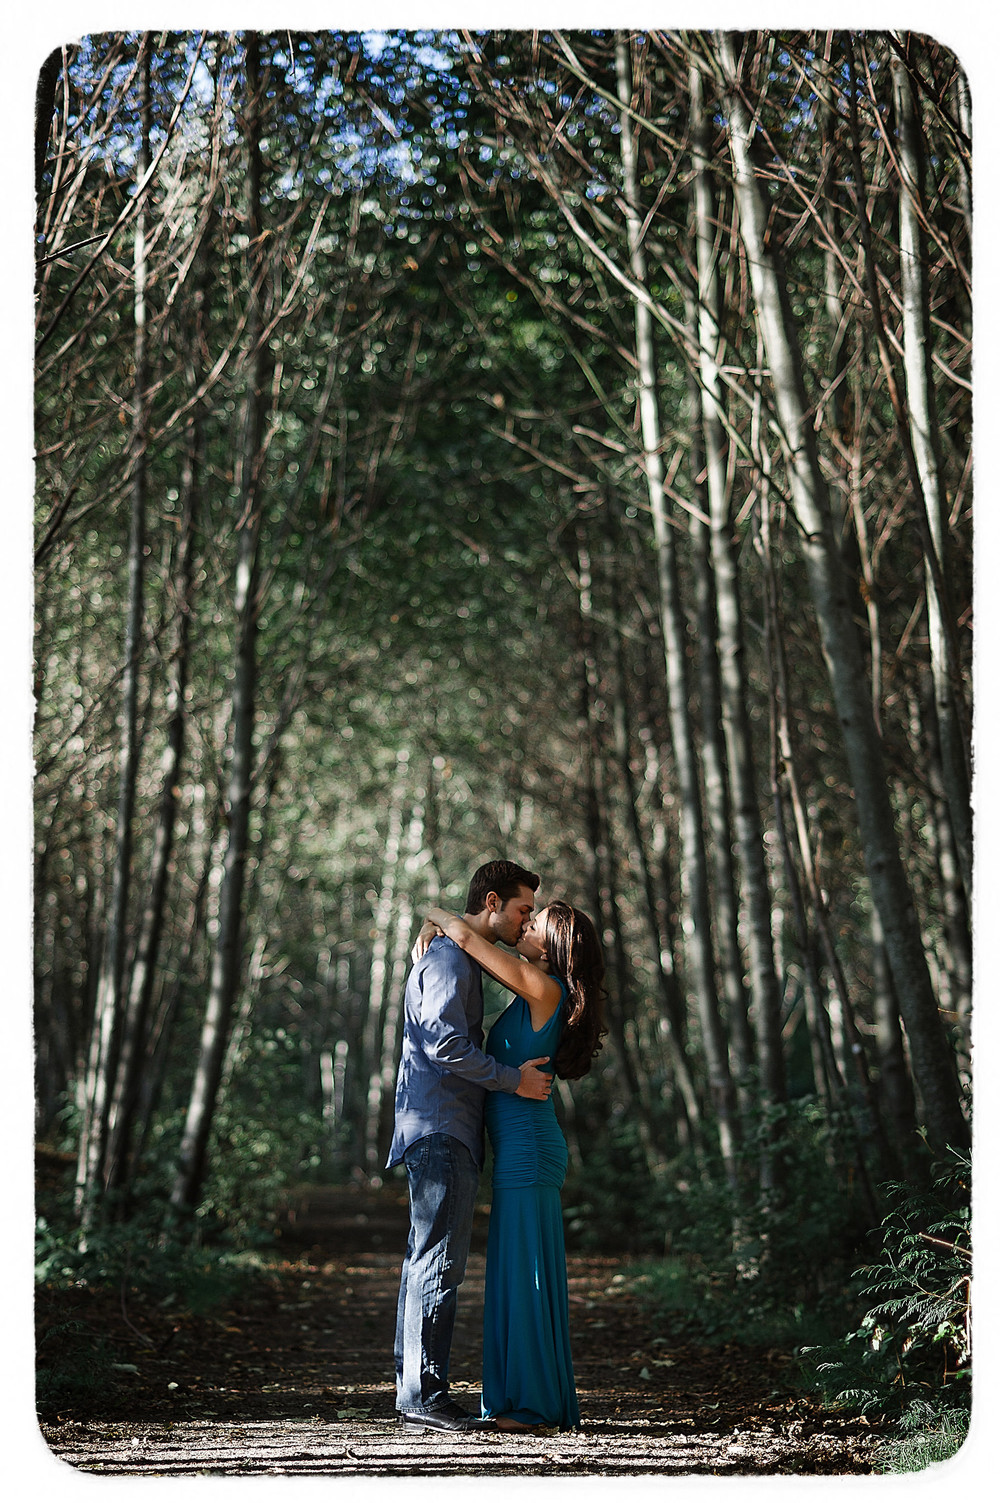 Kelly&Mike-EngagementSession-OriginalCollection-27Film.jpg